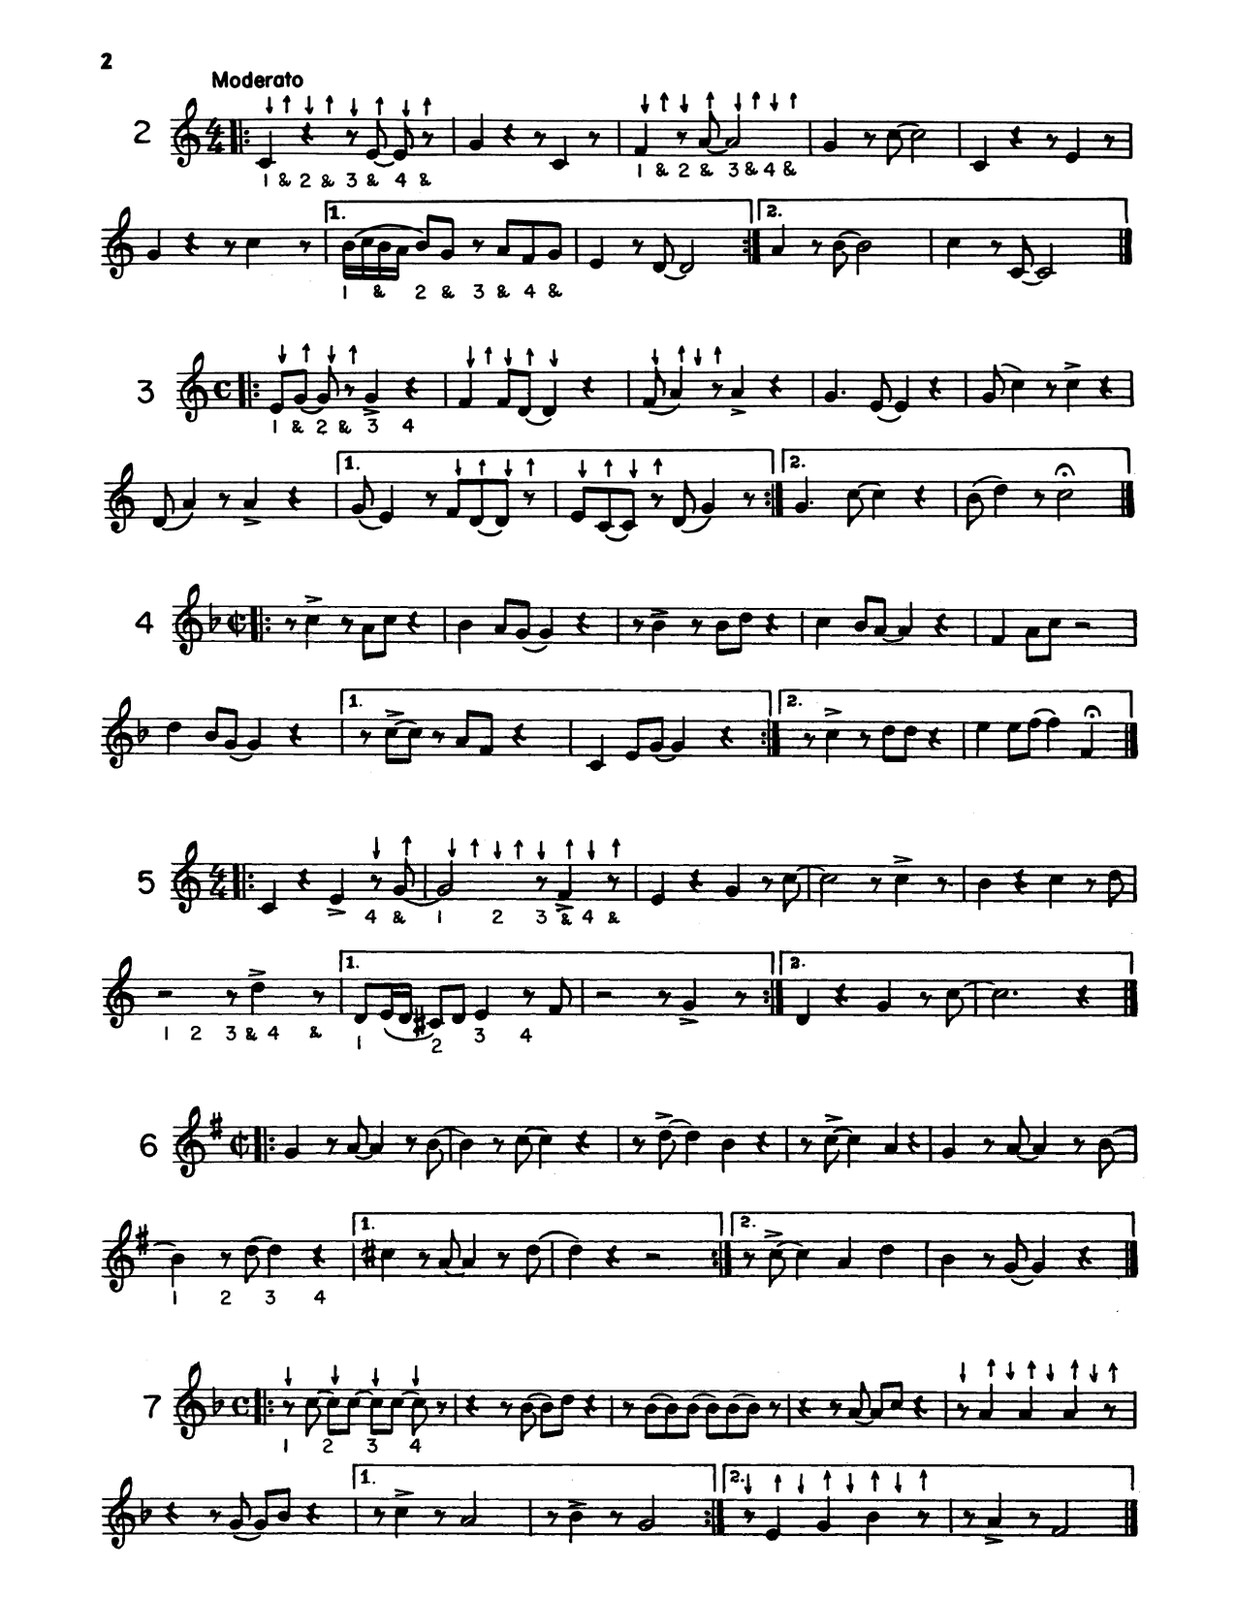 Huffnagle-Gornston, Melody Way to Syncopation-p06